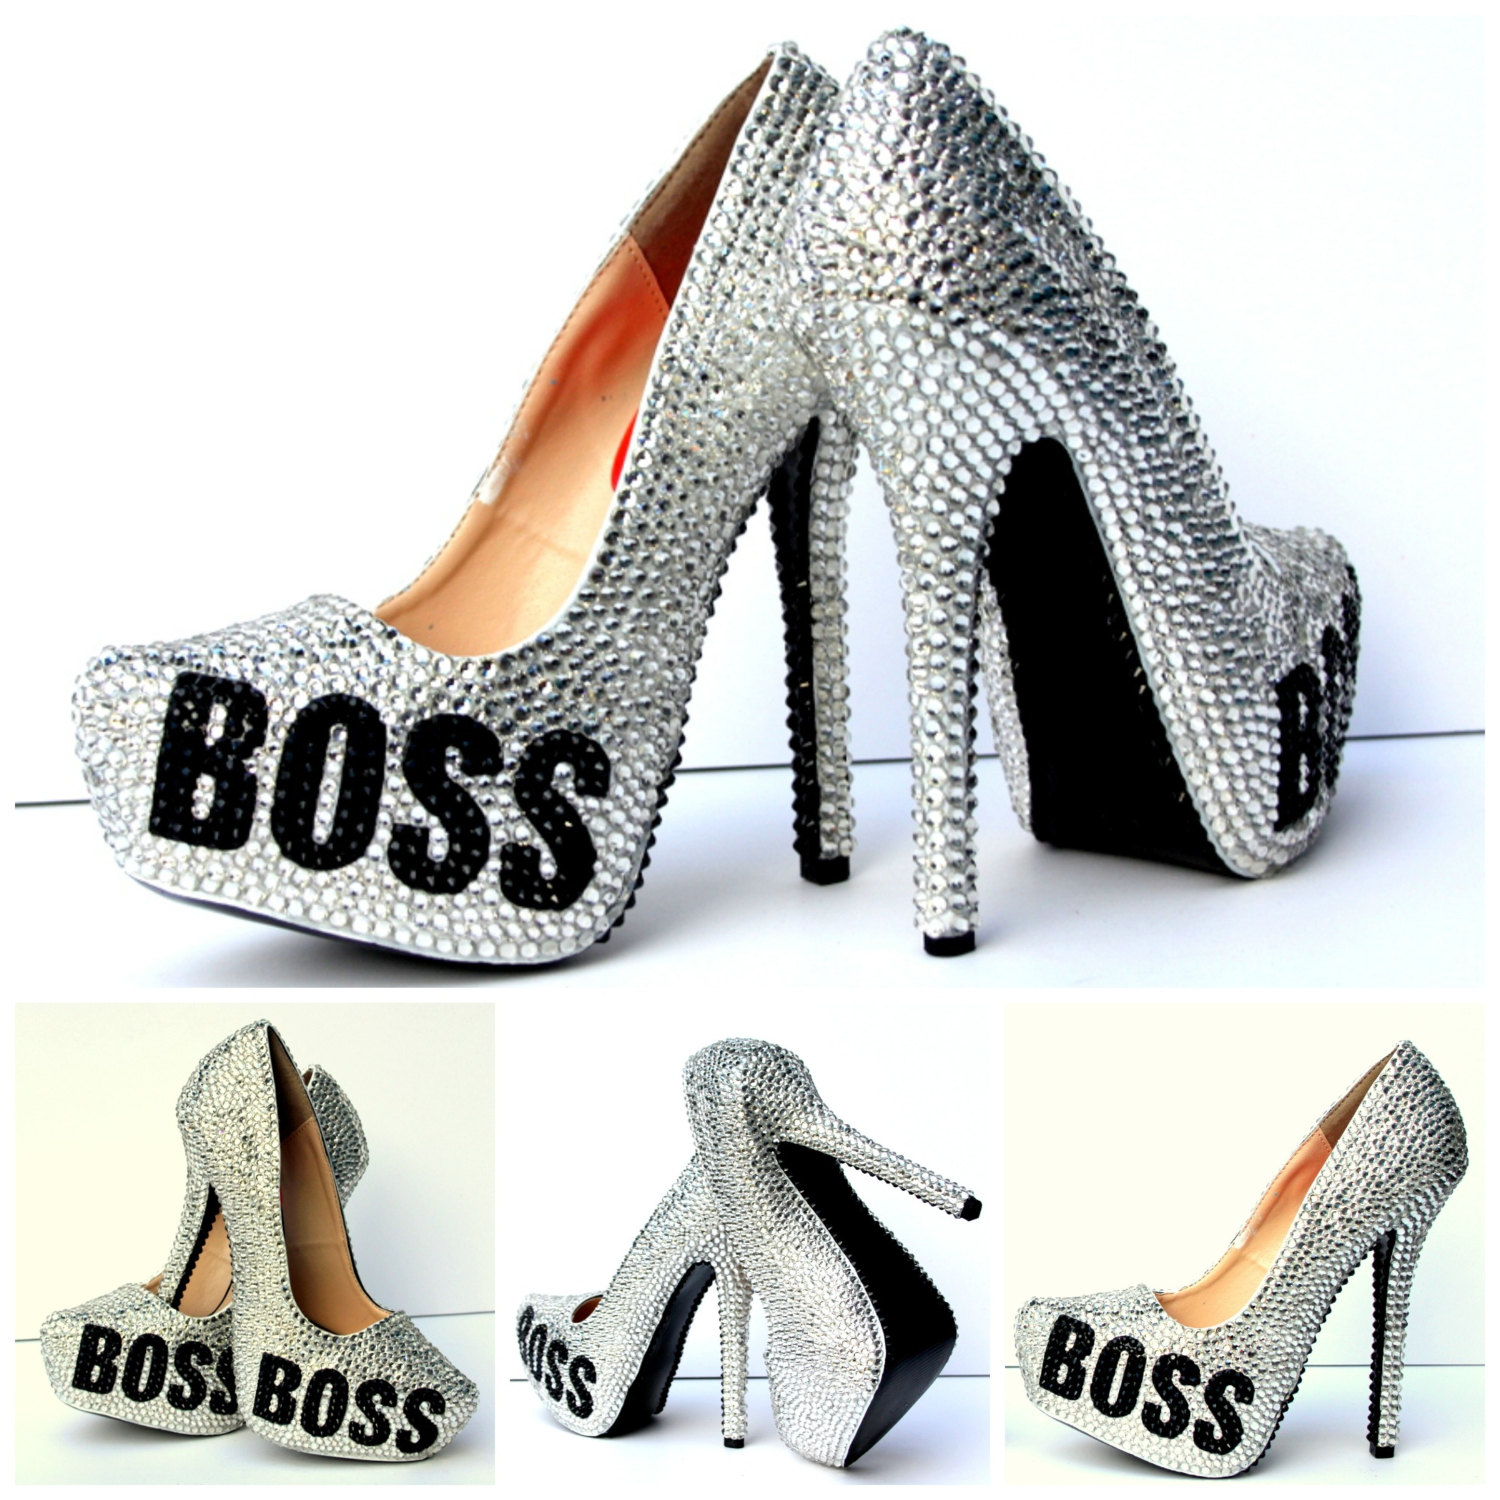 d6b82d25f BOSS High Heels covered in Swarovski Crystals with black glitter ...